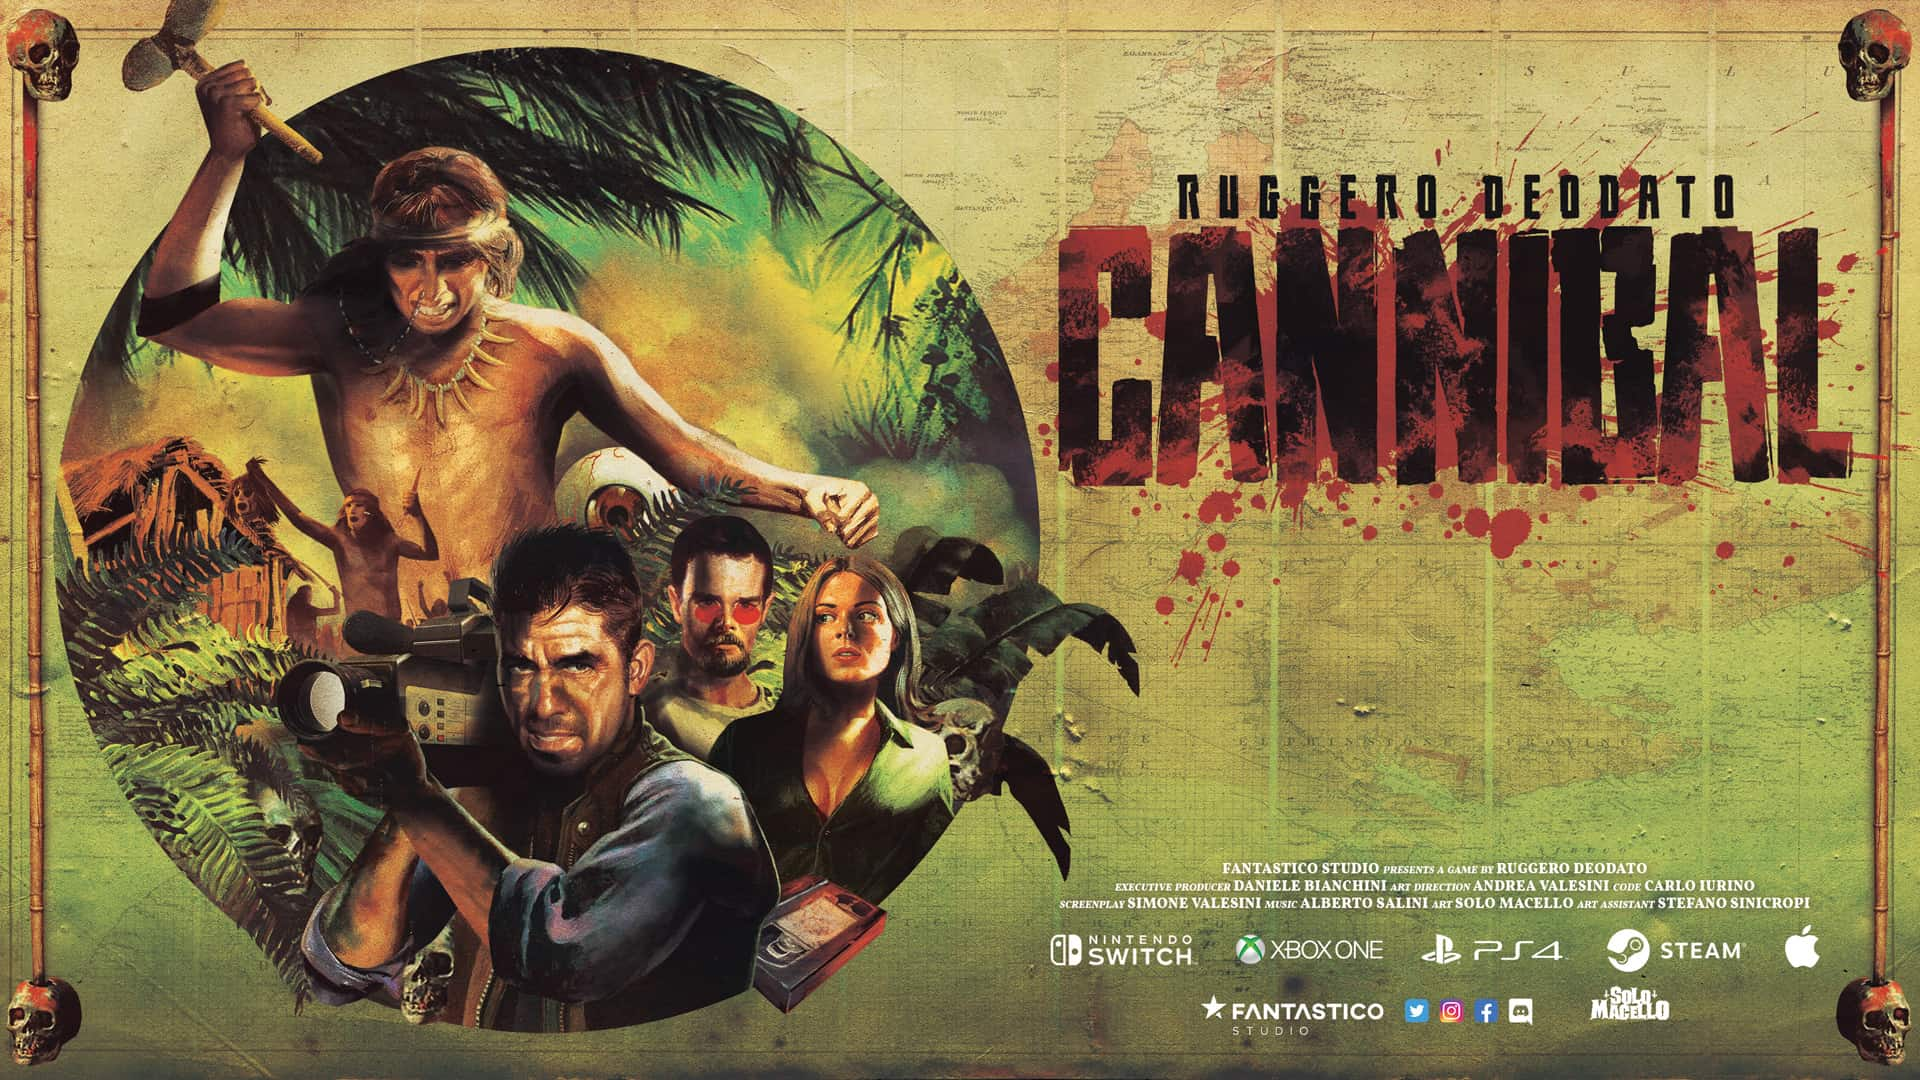 Horror Movie News: Cannibal Holocaust is Going to be a Video Game!